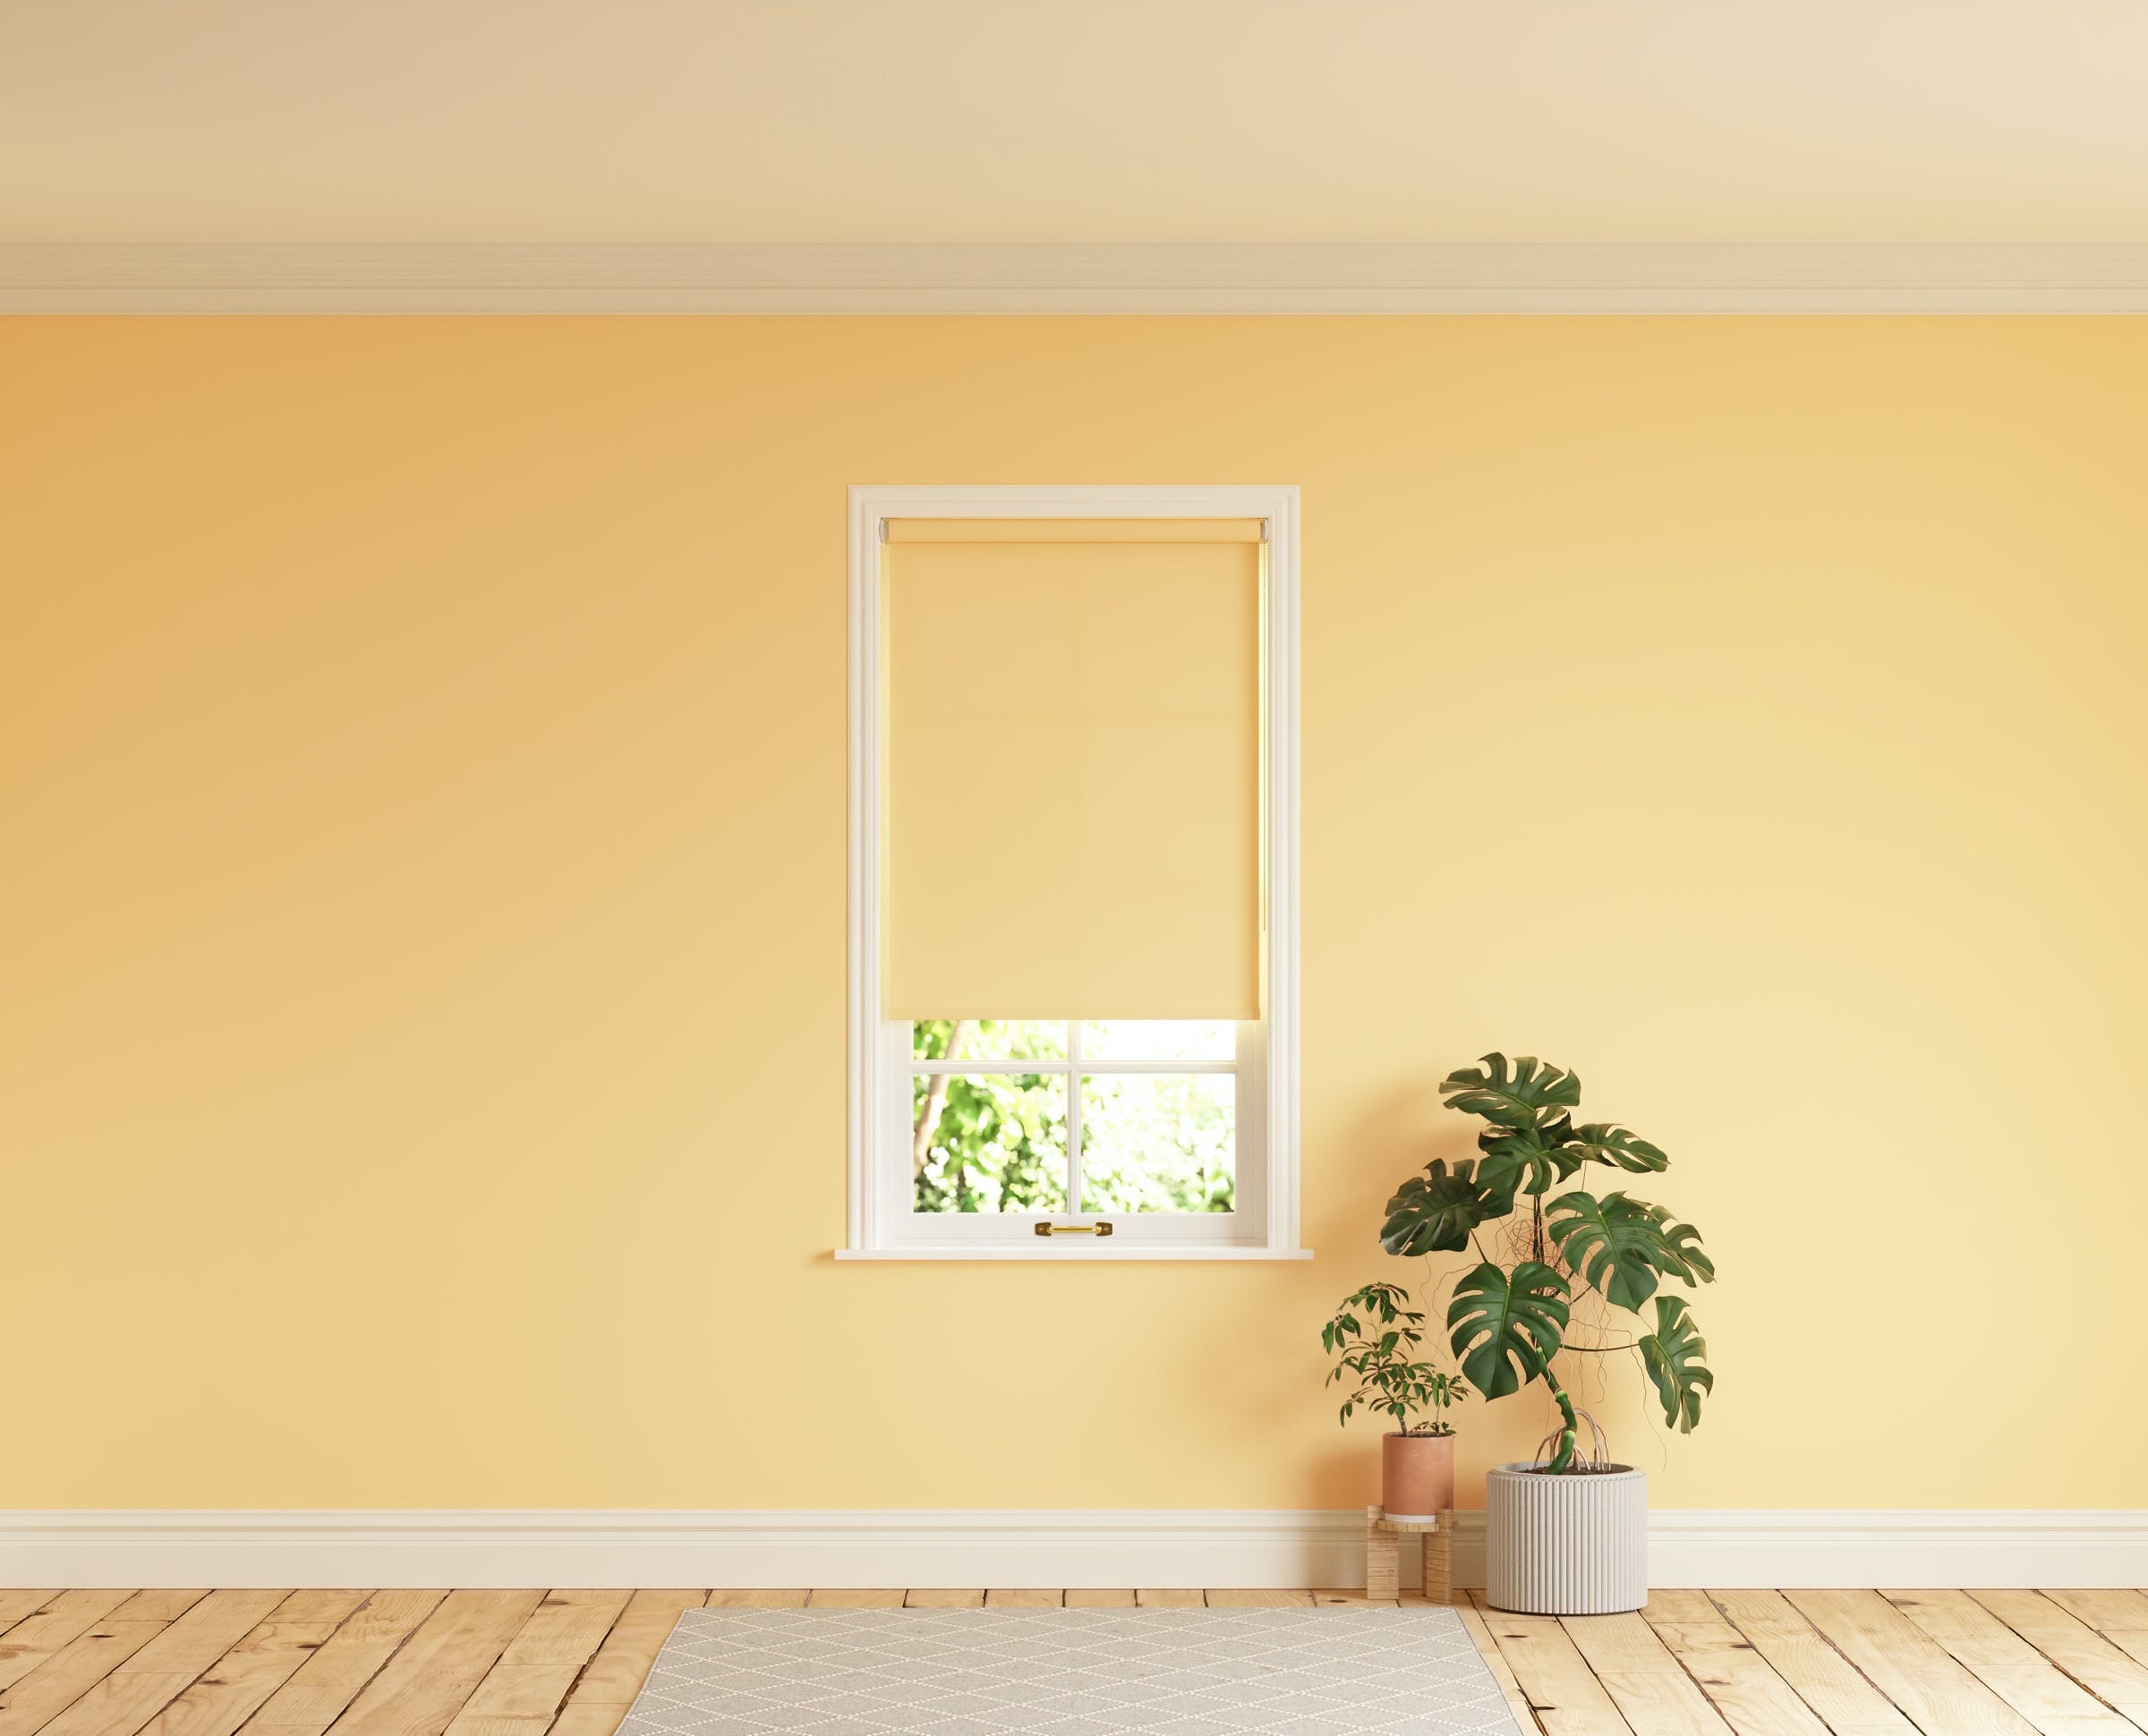 Room with walls painted in Lick Yellow 01 and Yellow 01 roller blinds